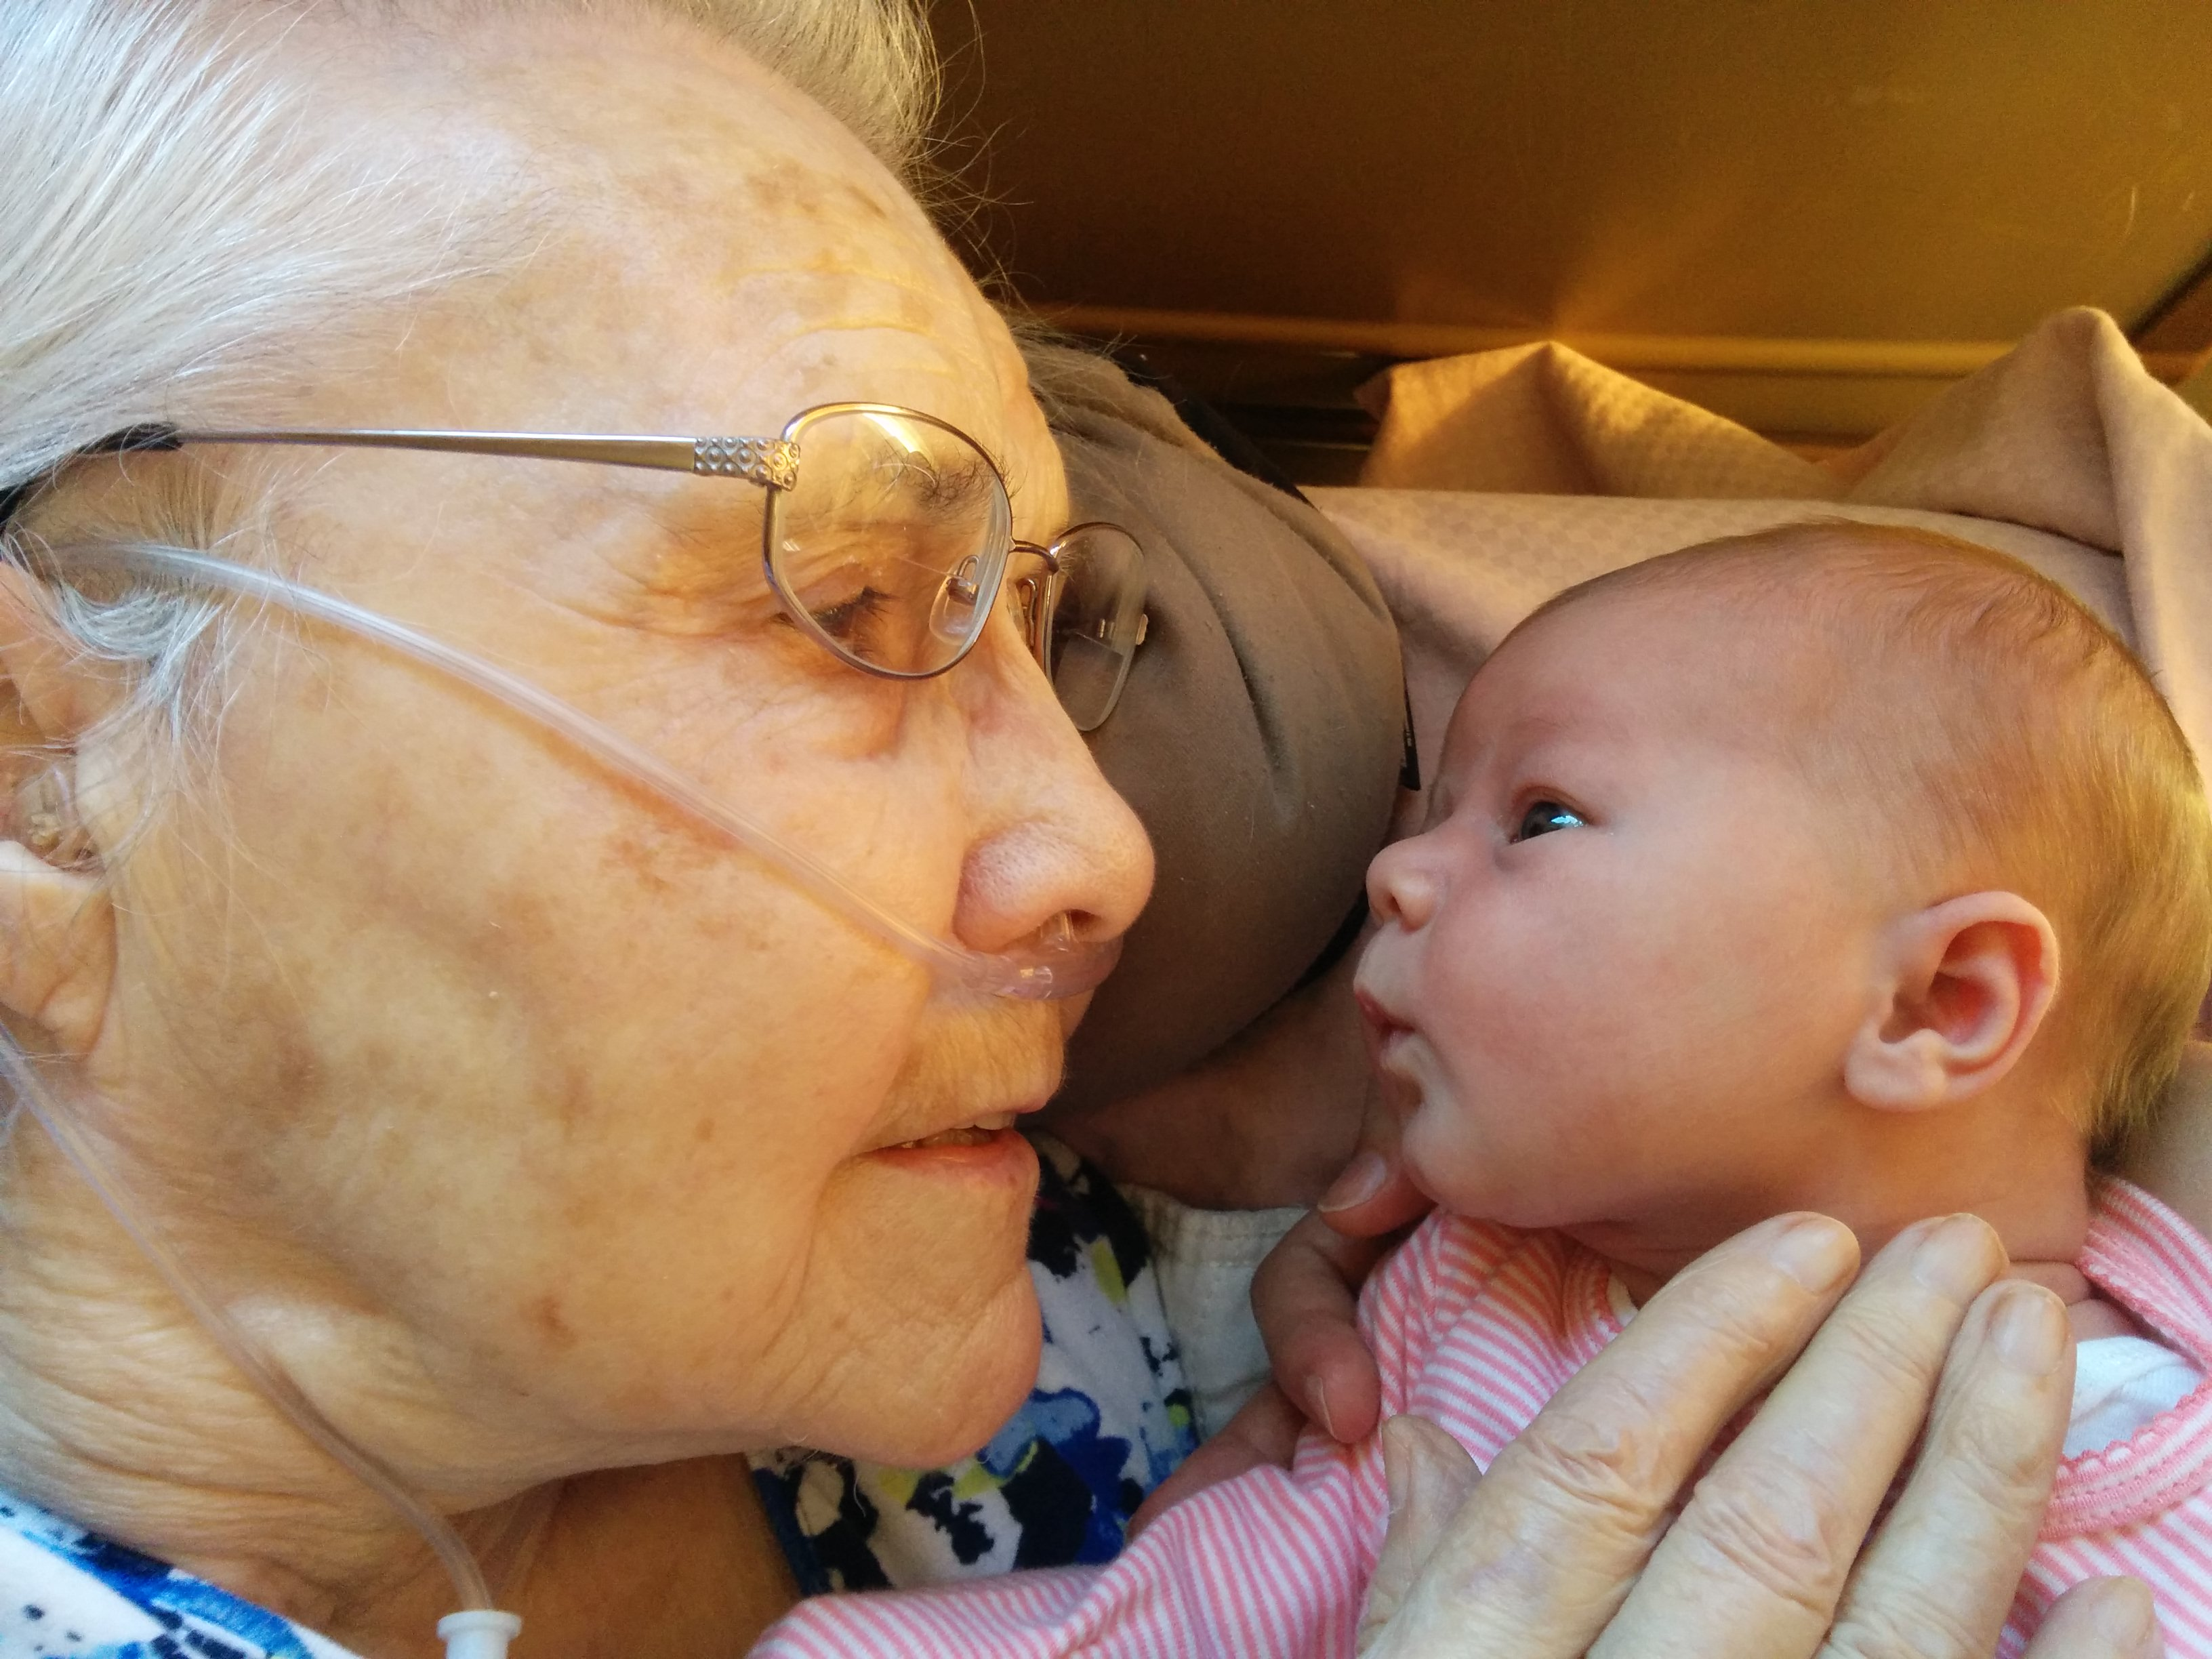 This is the moment a newborn baby met her great-grandmother—and it is exquisite